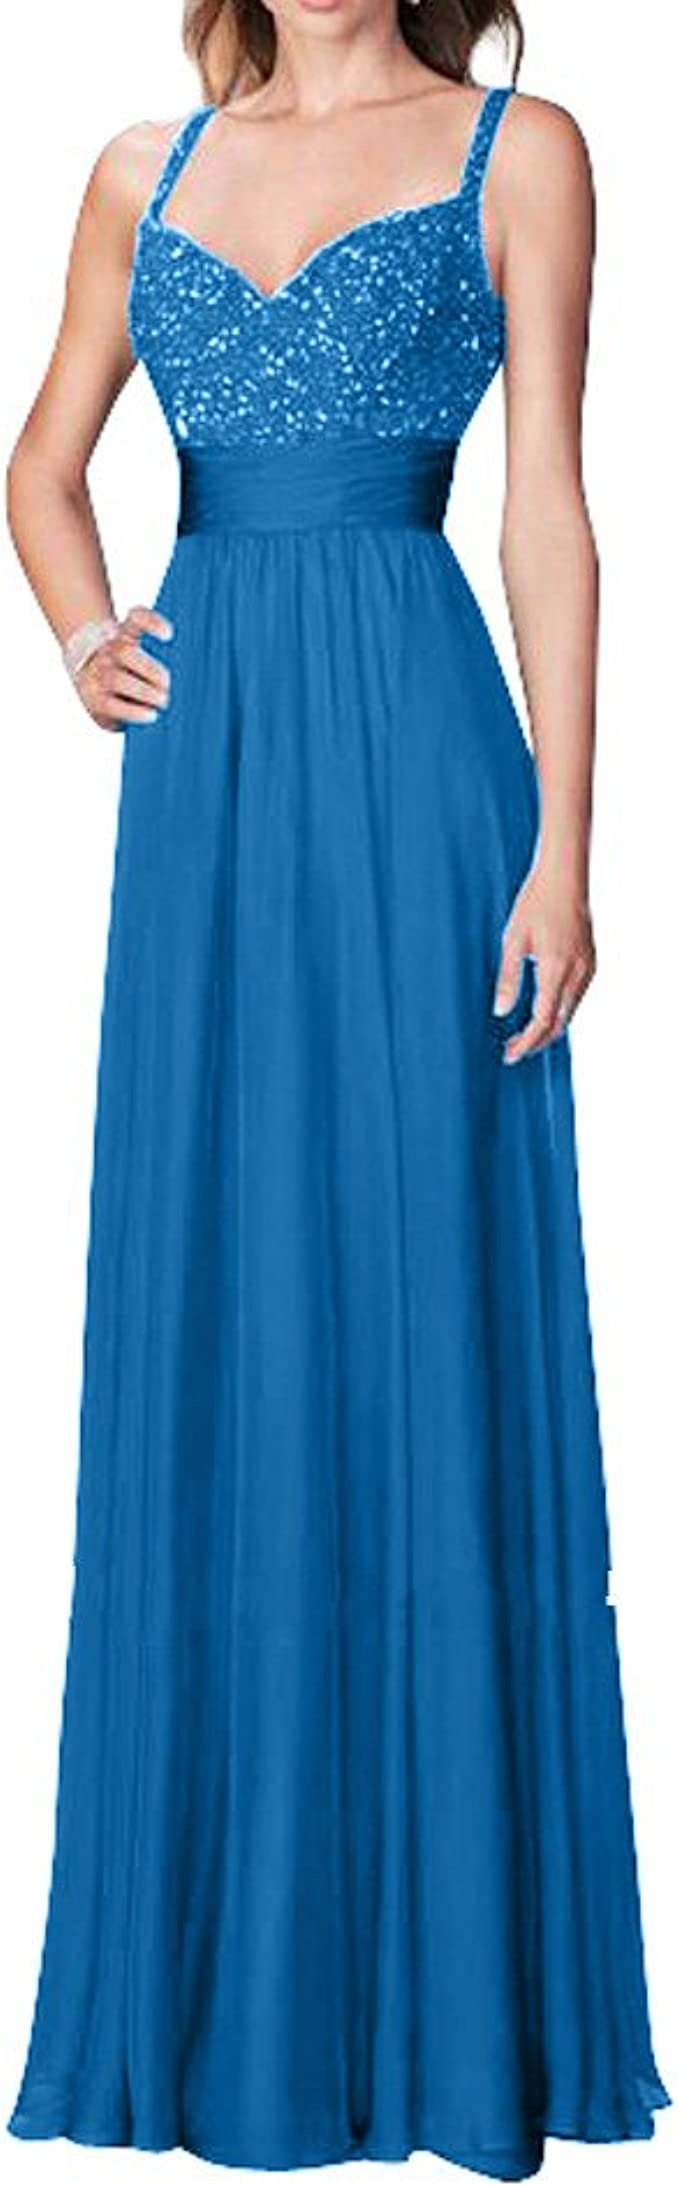 Royaldress Damen Royal Blau Spitze Abendkleider Partykleider